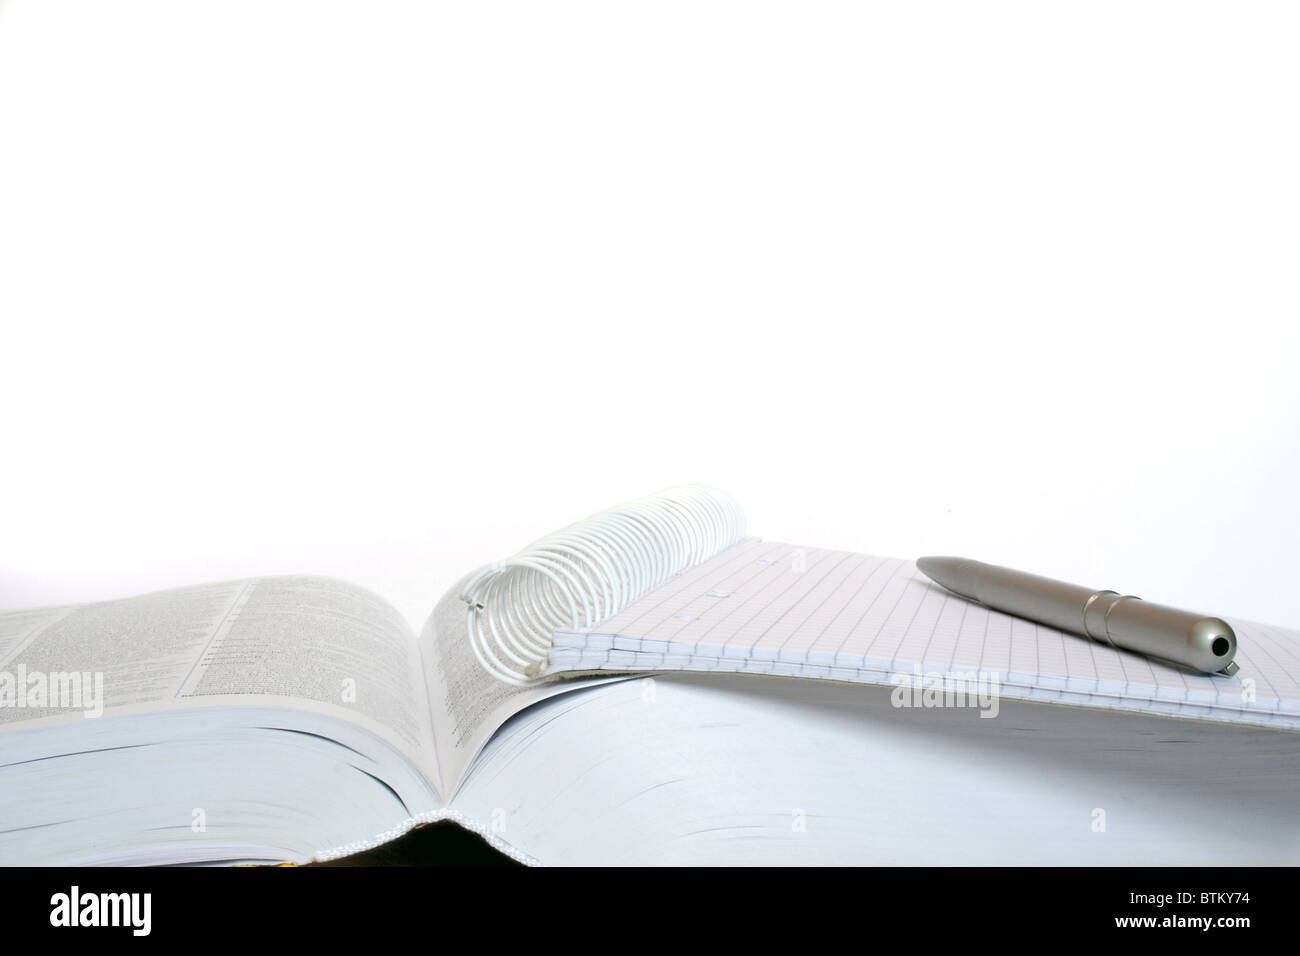 Schoolbook pen and paper to study. All isolated on white background - Stock Image